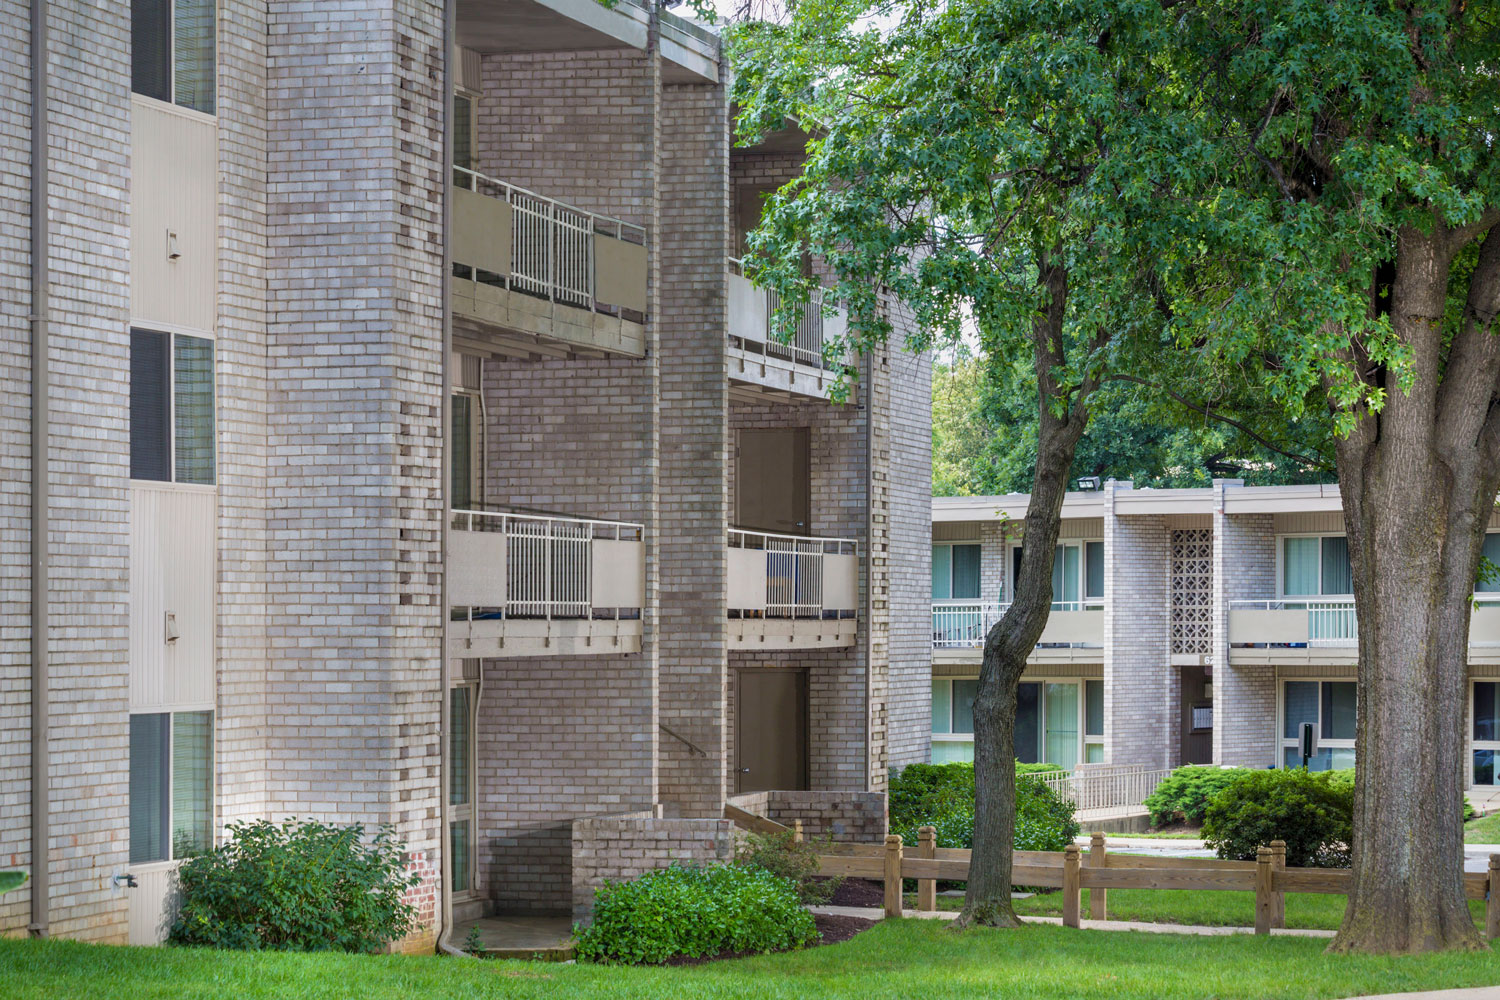 1, 2 and 3 bedroom apartments at Riverside Plaza Apartments in Oxon Hill, MD